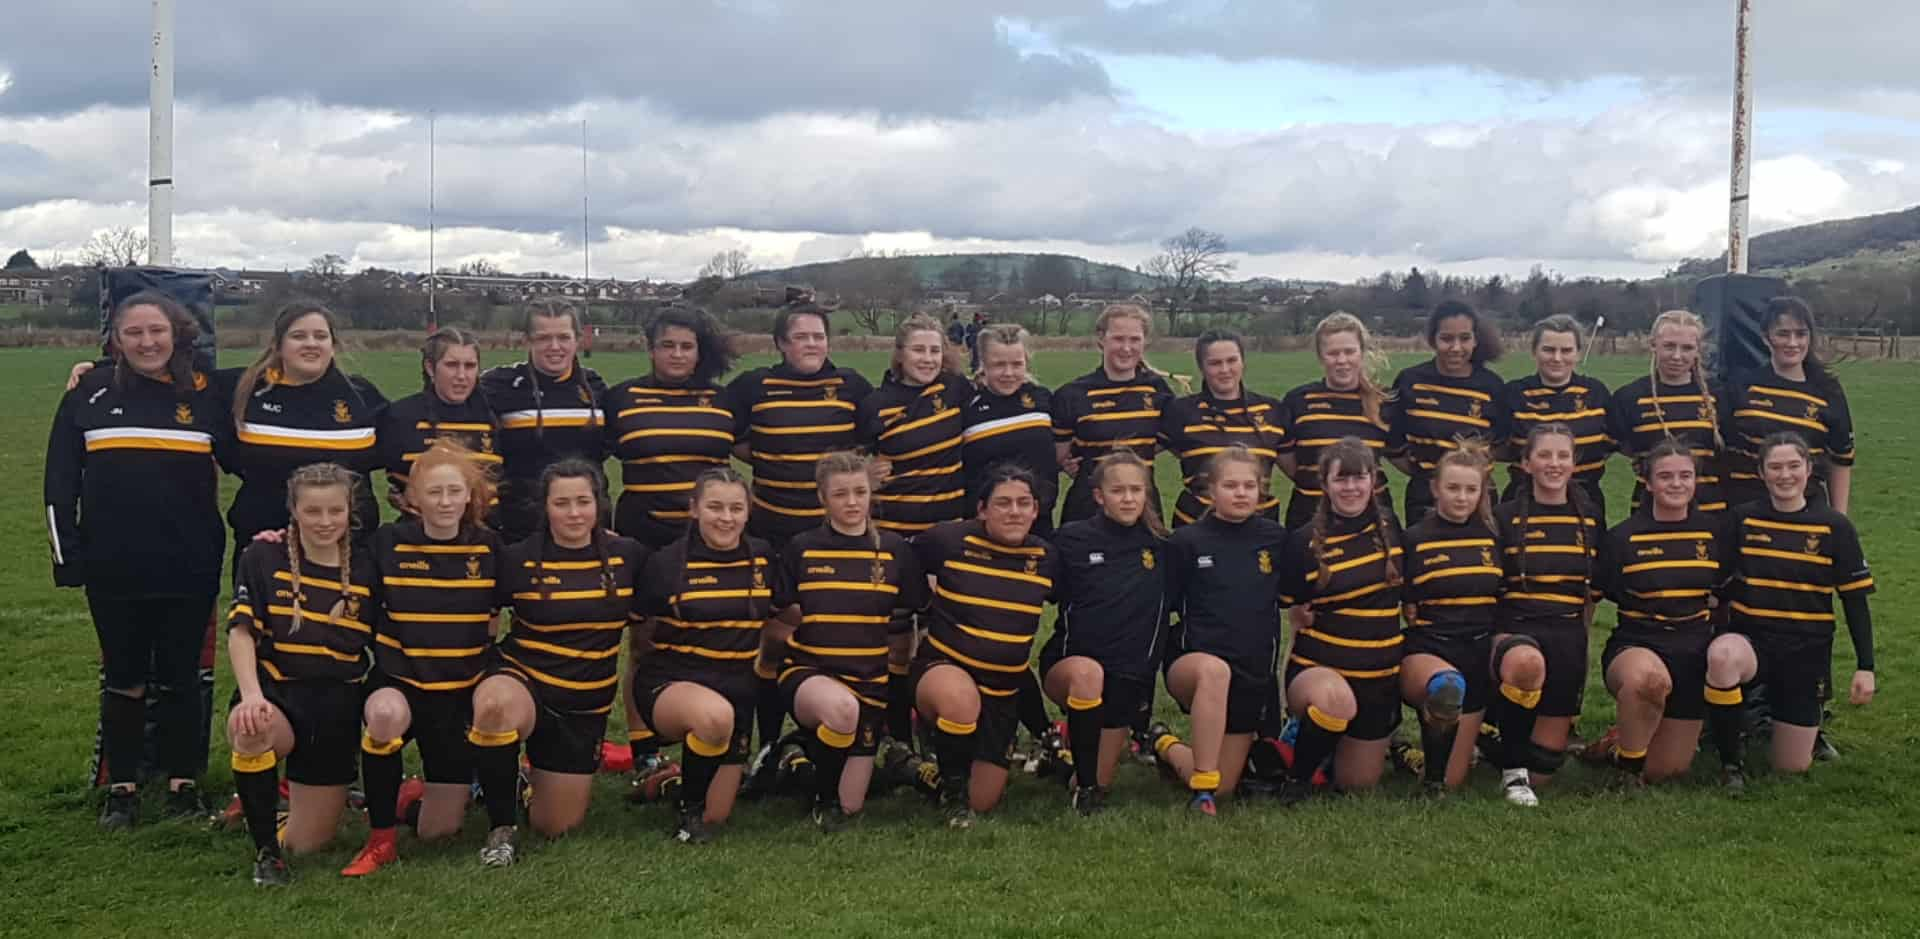 Cornwall Girls Under 18s, 2020